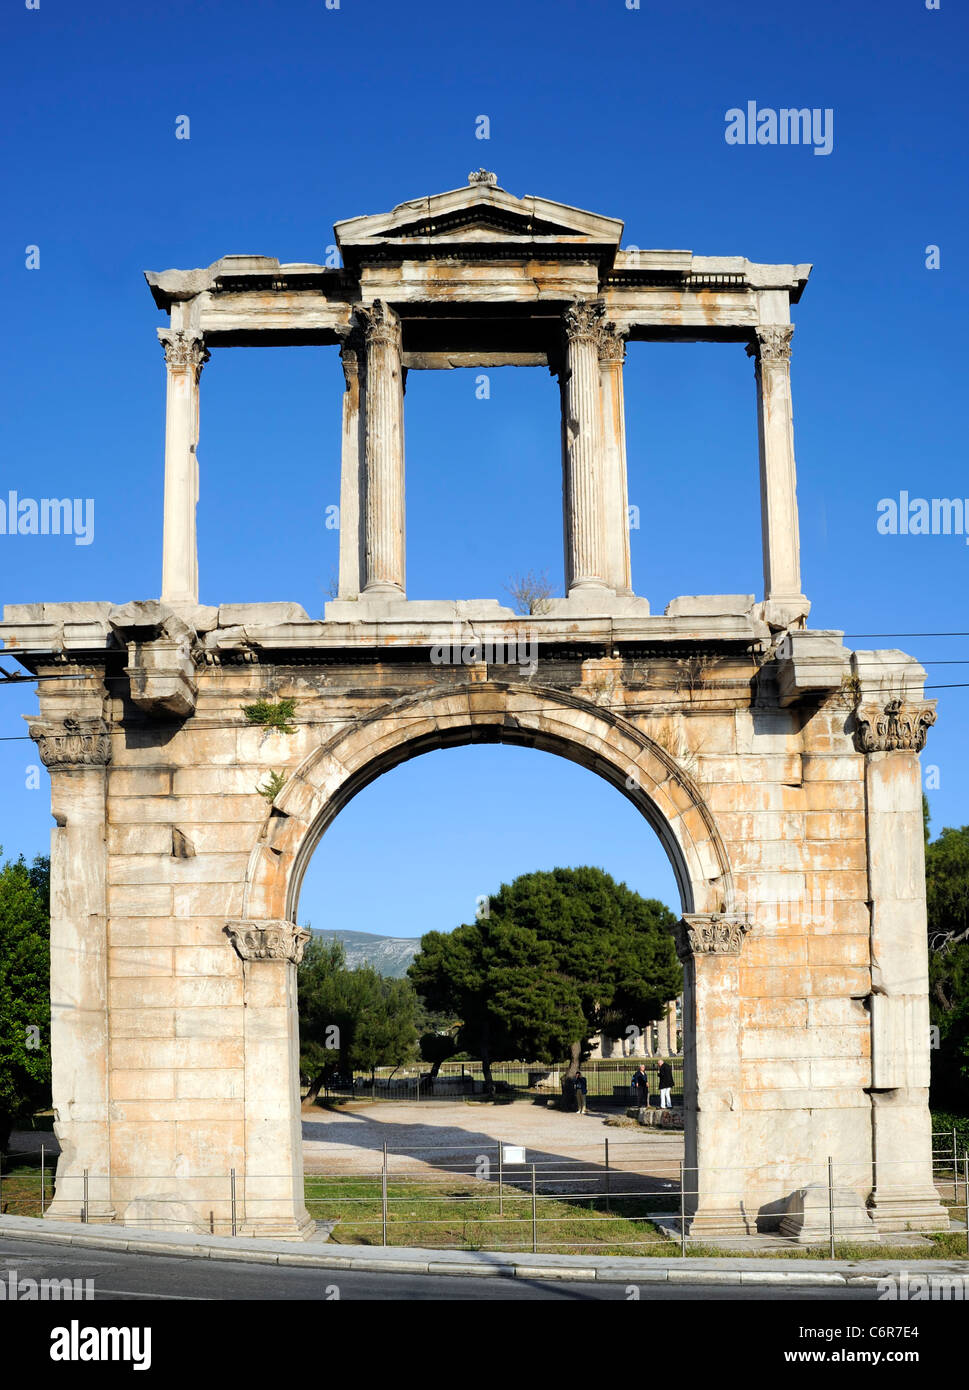 Athens, Greece, Hadrian's arch - Stock Image